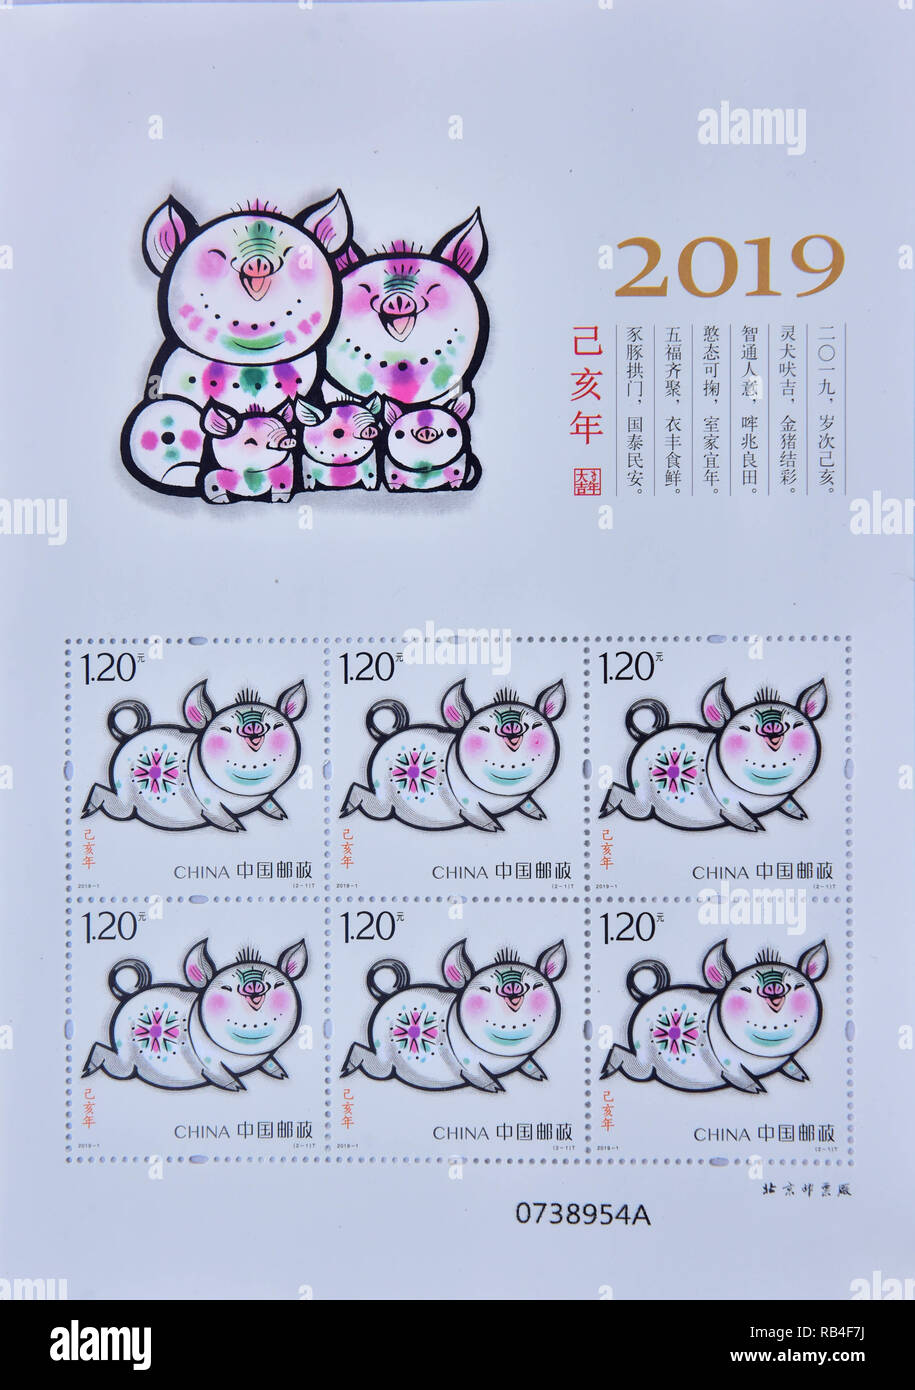 January 5, 2019 - China - China Post issues stamps of the Year of